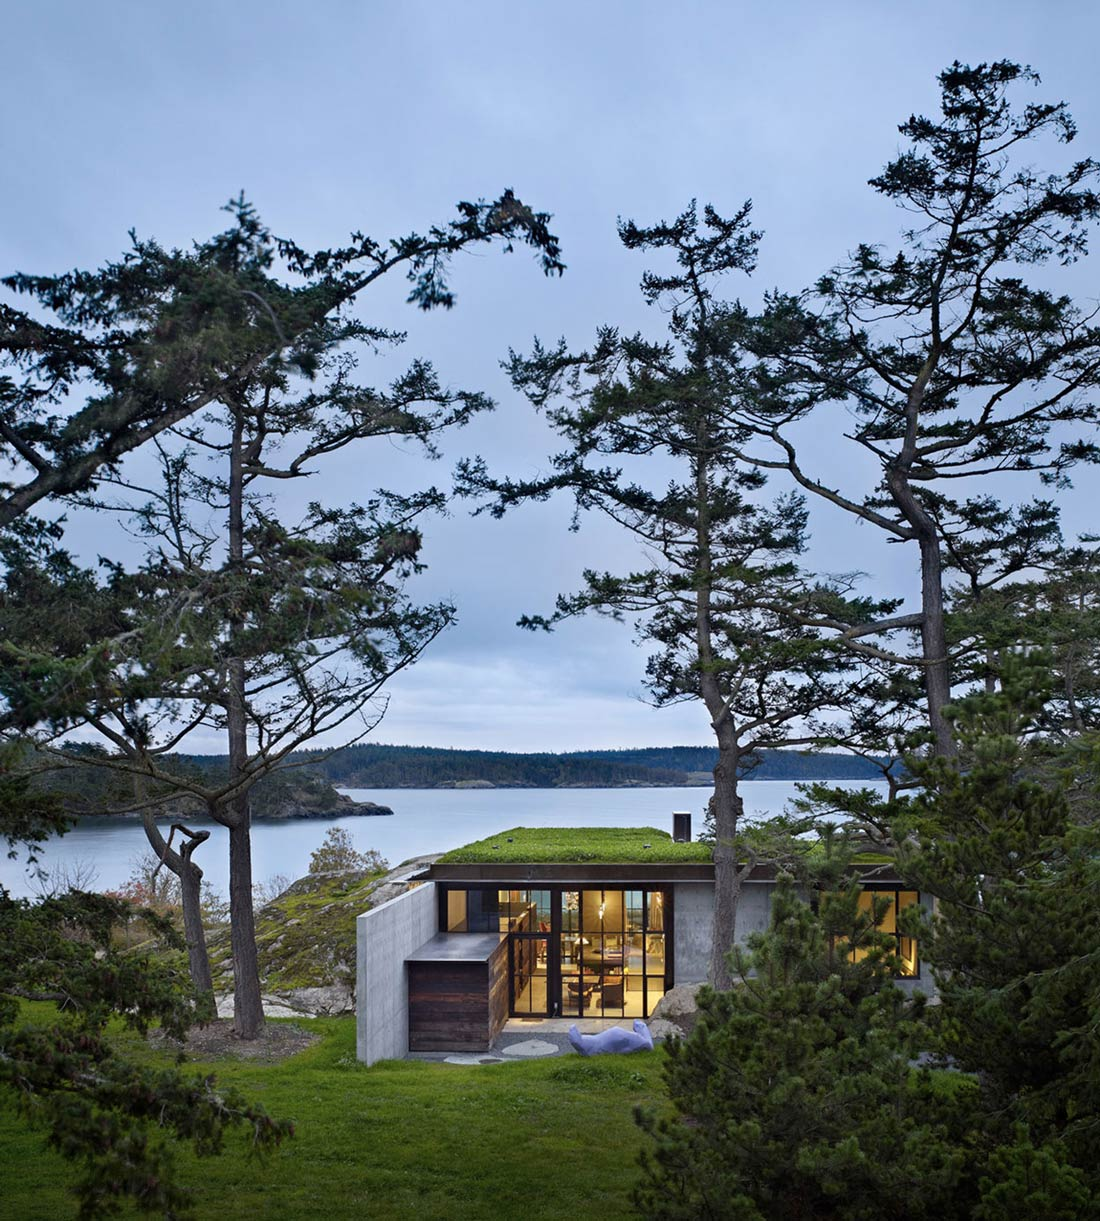 Green Roof, Garden, Ocean Views, The Pierre on San Juan Island by Olson Kundig Architects